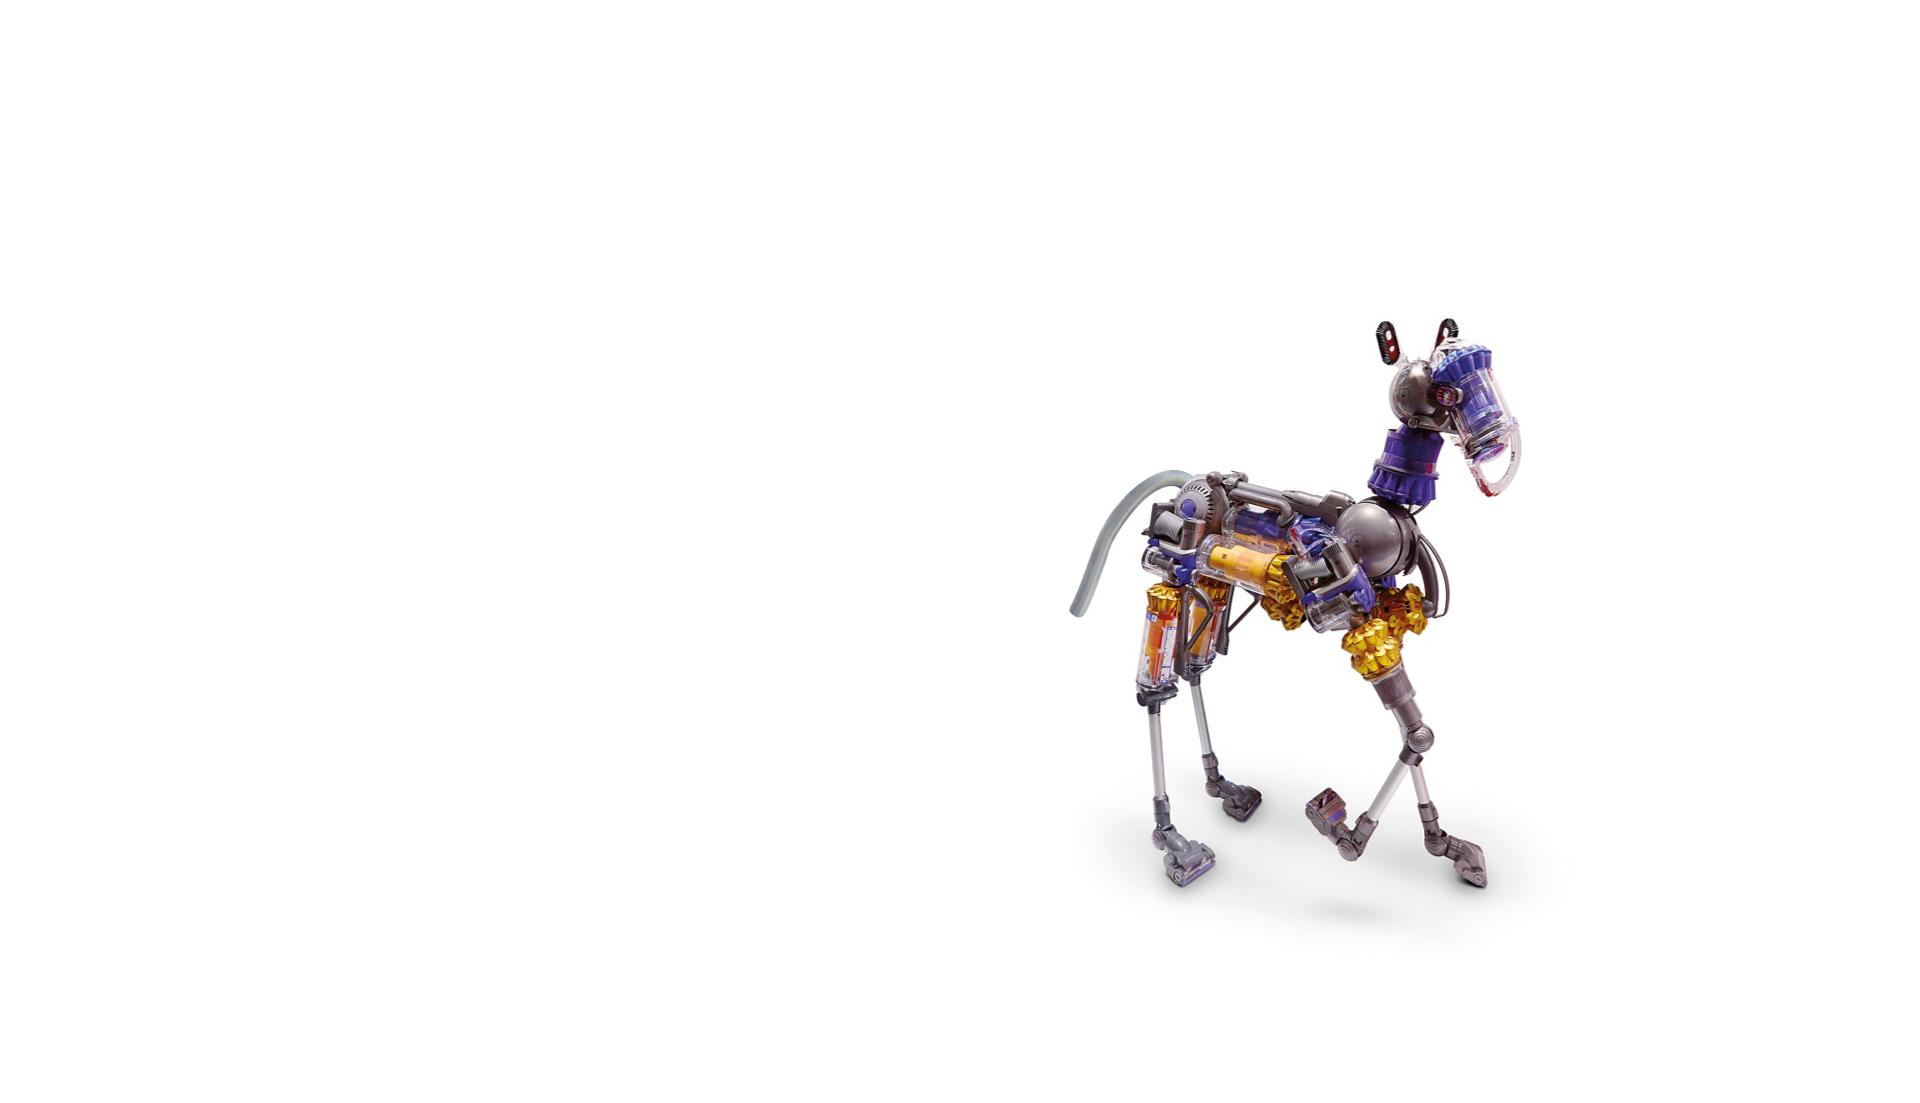 Dyson vacuum cleaners put together to form a horse